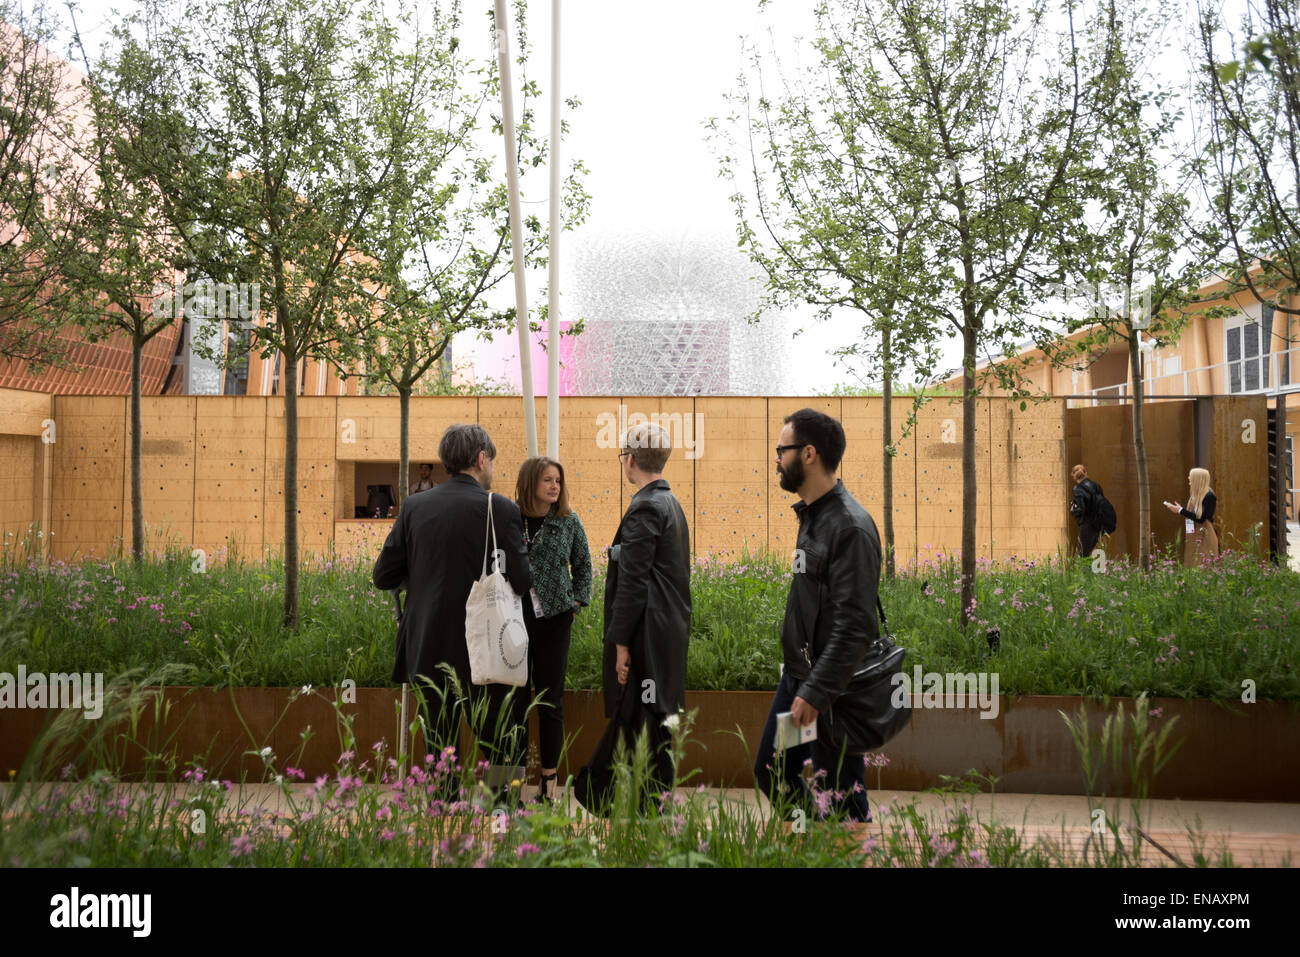 Milan, Italy - 1 May 2015: UK Pavilion as Expo Milano 2015 world fair kicks off under the rain. The Pavilion is - Stock Image